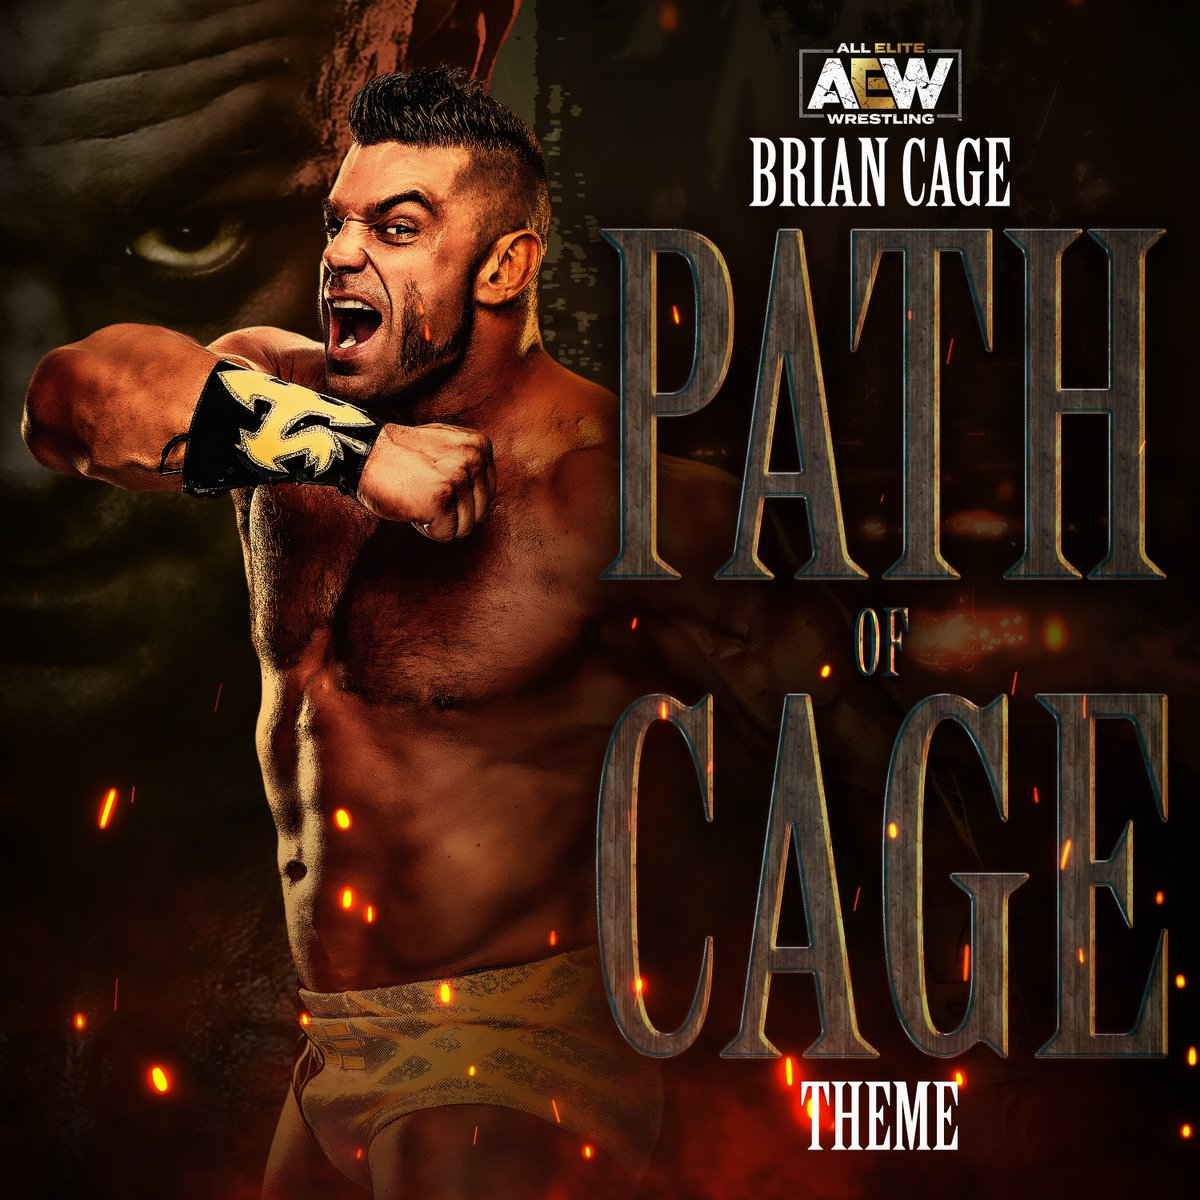 🚨WHO CAN STOP THE PATH OF CAGE?!🚨 The brand new Original #AEW Entrance Theme Path Of Cage for The Machine @MrGMSI_BCage is NOW AVAILABLE for EARLY DIRECT DOWNLOAD! Grab your copy NOW!! Coming soon to all digital platforms! @OfficialTAZ @MikeyRukus bit.ly/3ekOj0V